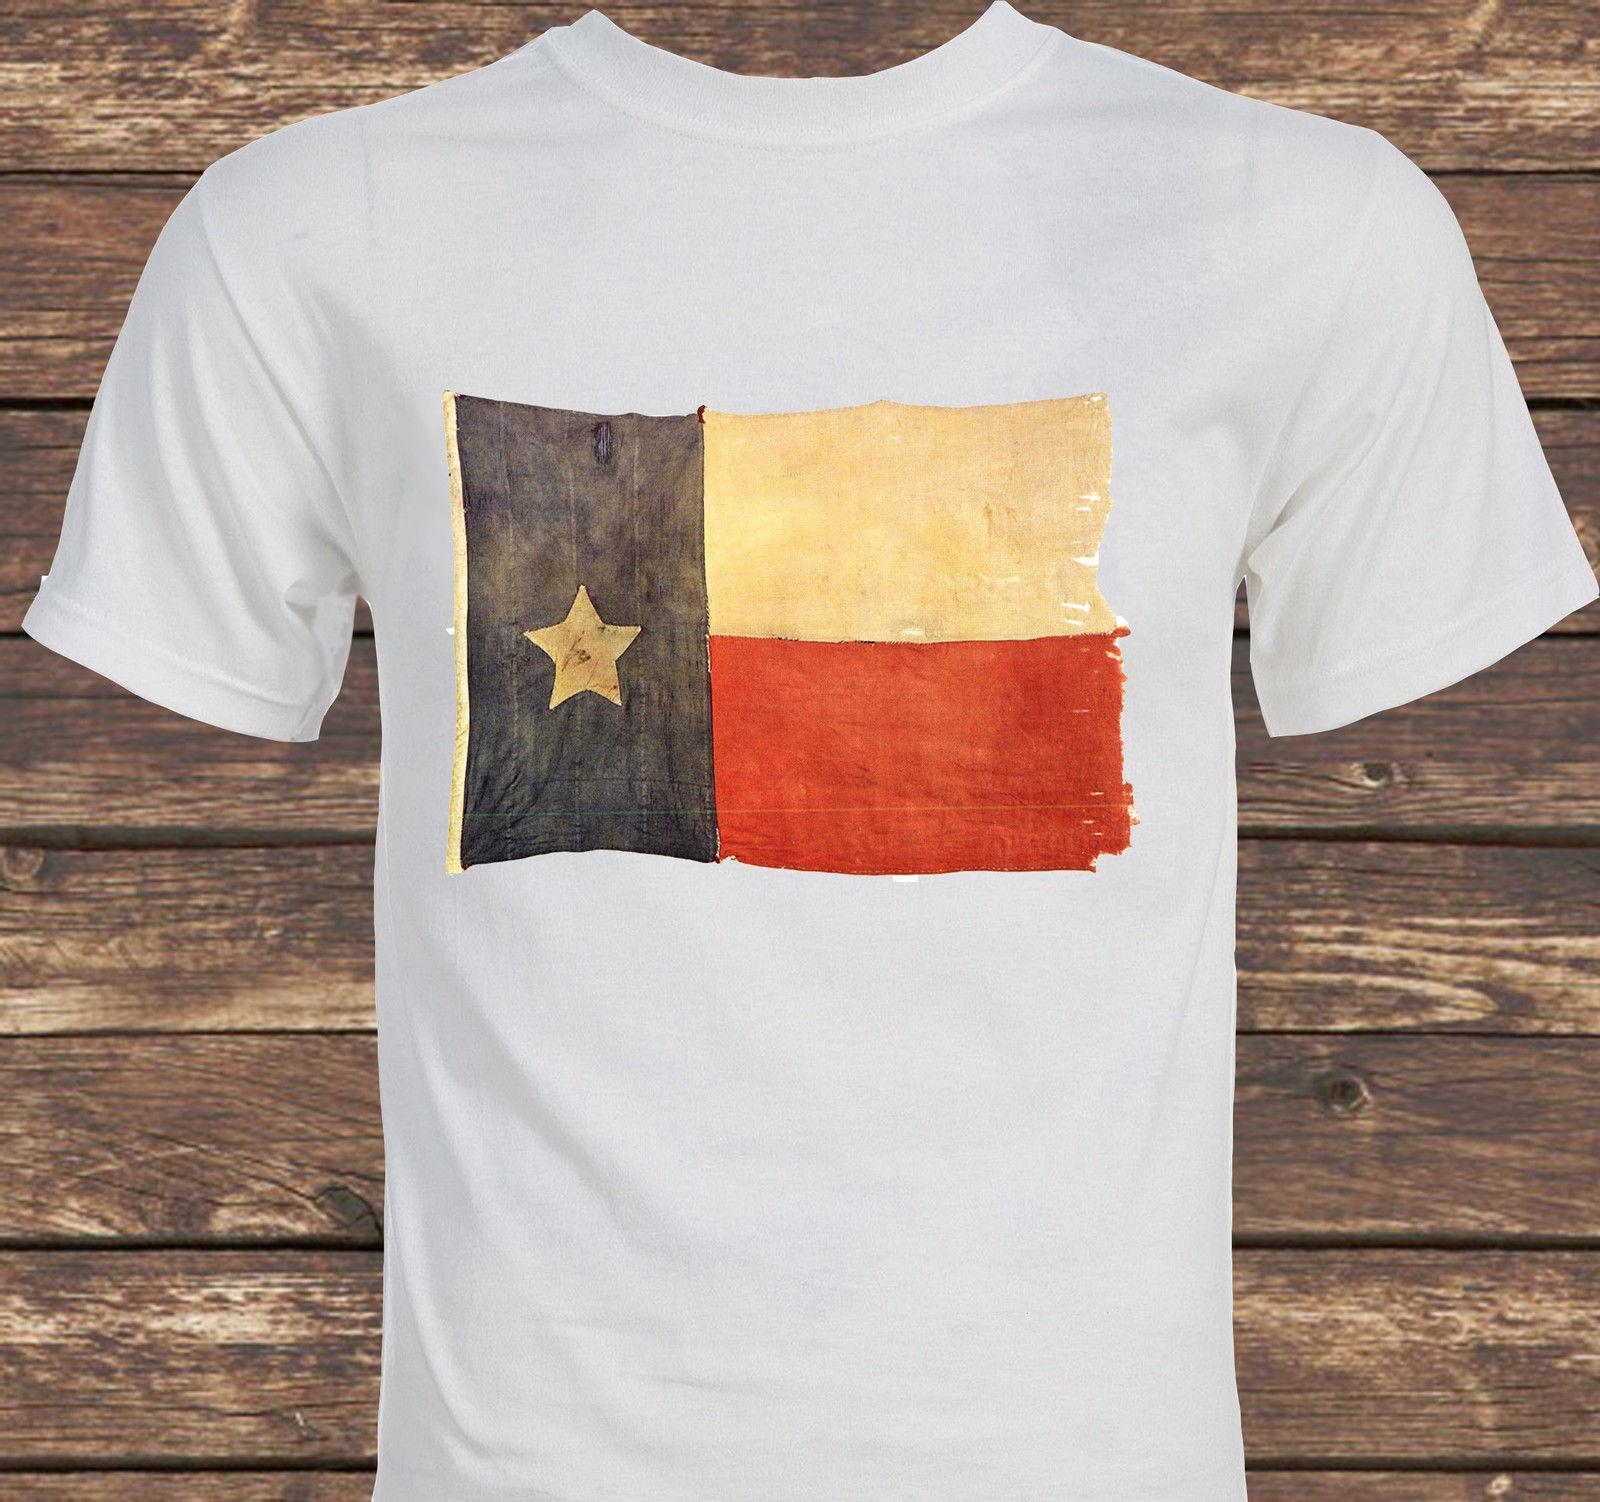 Old Texas Flag Lone Star non scherza con la t-shirt texas T-shirt size hot new tshirt